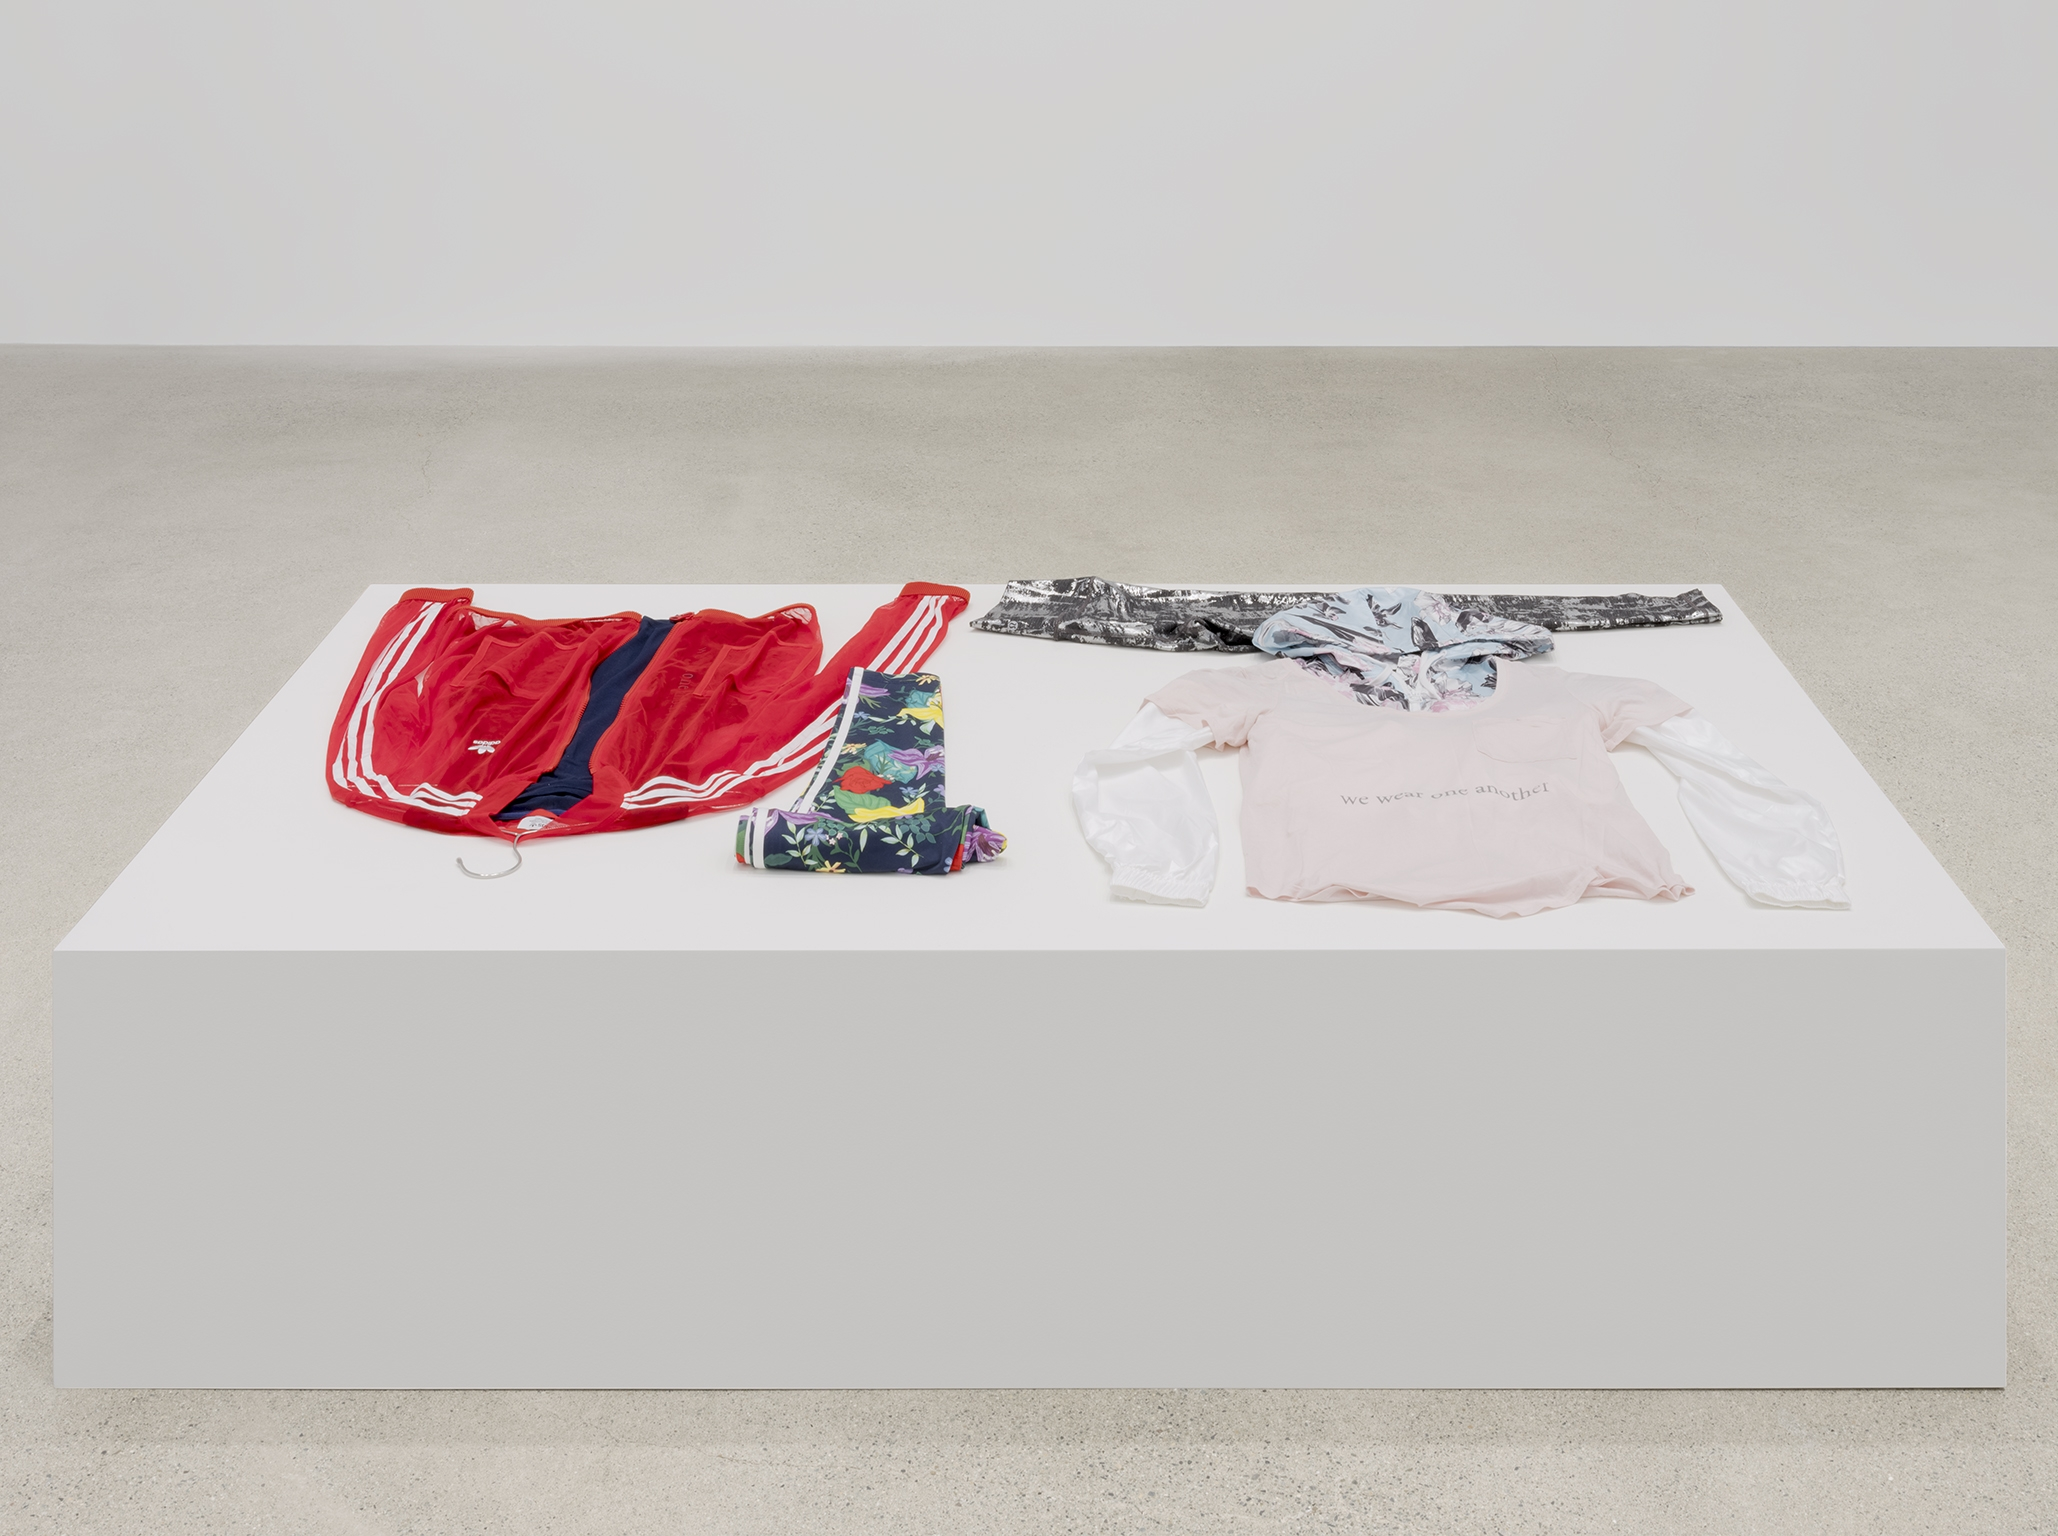 ​Tanya Lukin Linklater, We wear one another, 2019, attire for performance, silkscreen, dimensions variable by